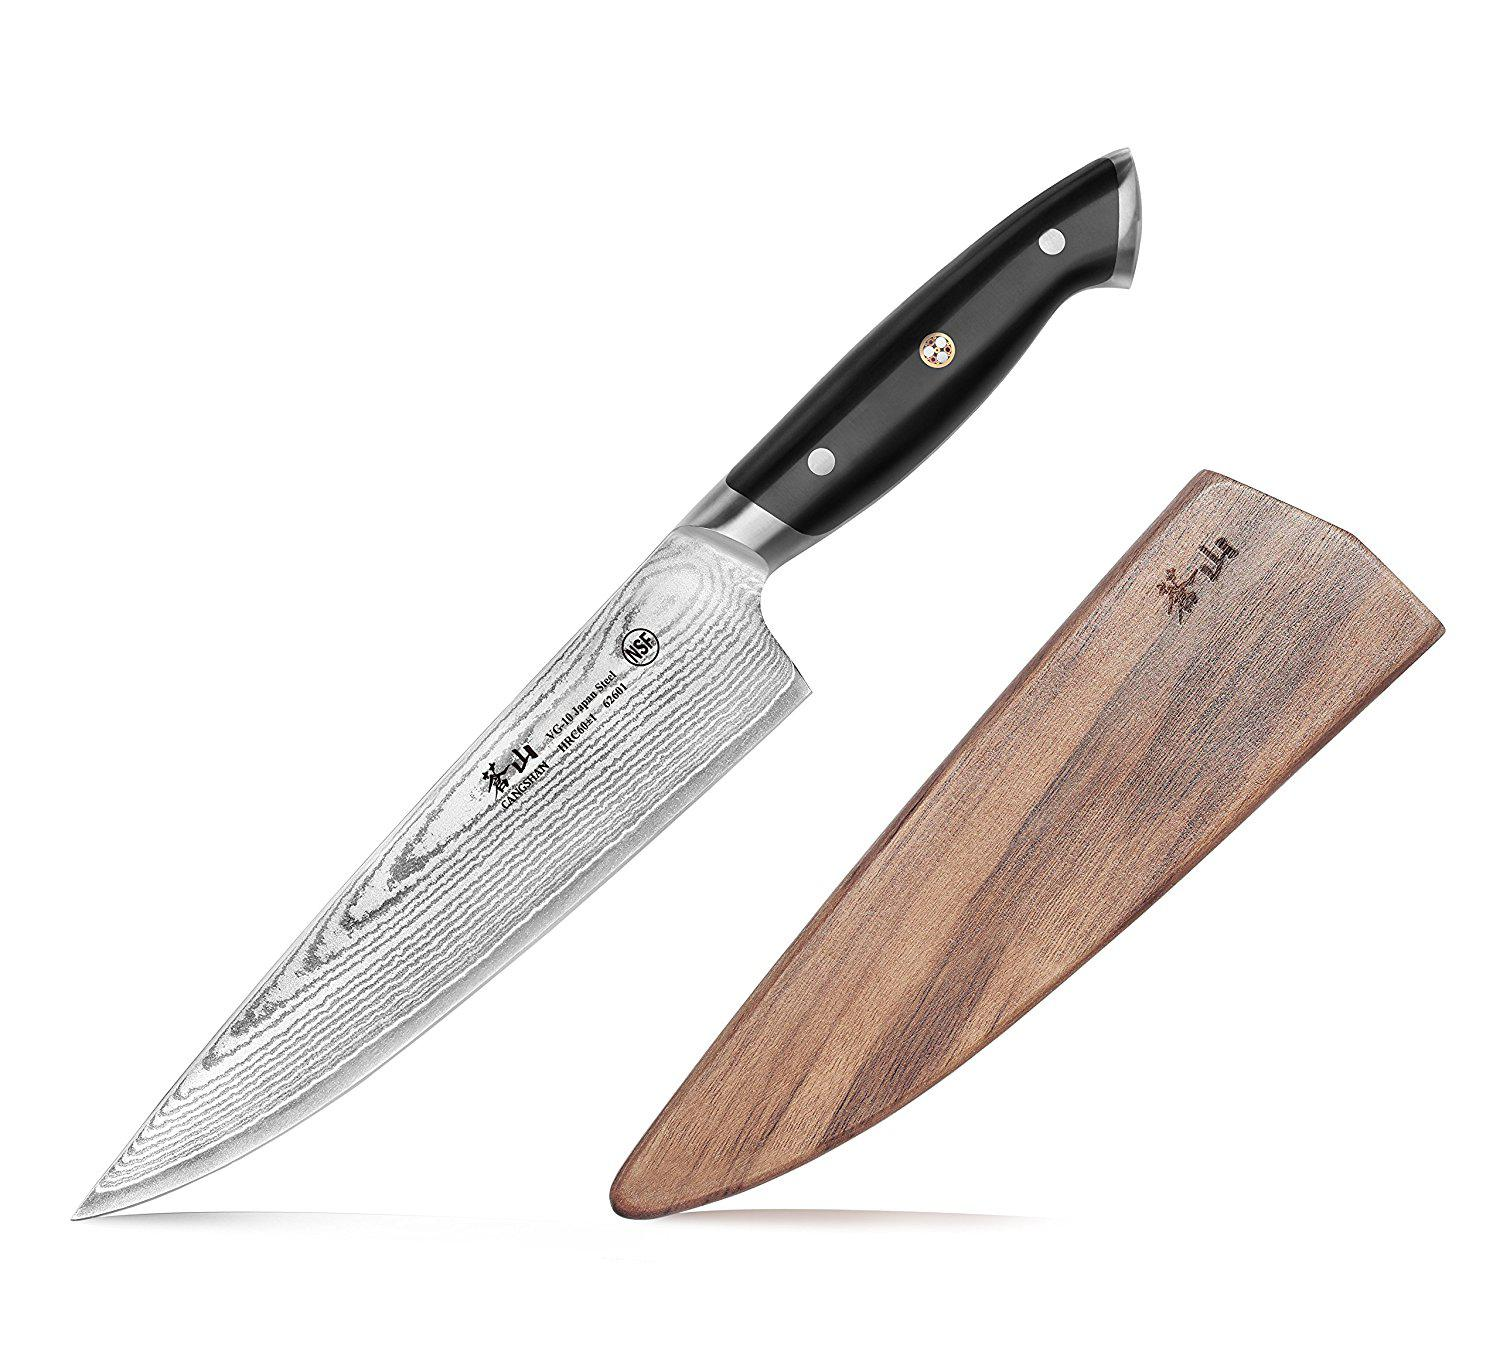 Knife Forging Ovens : Forged chef knife with walnut sheath best offer reviews